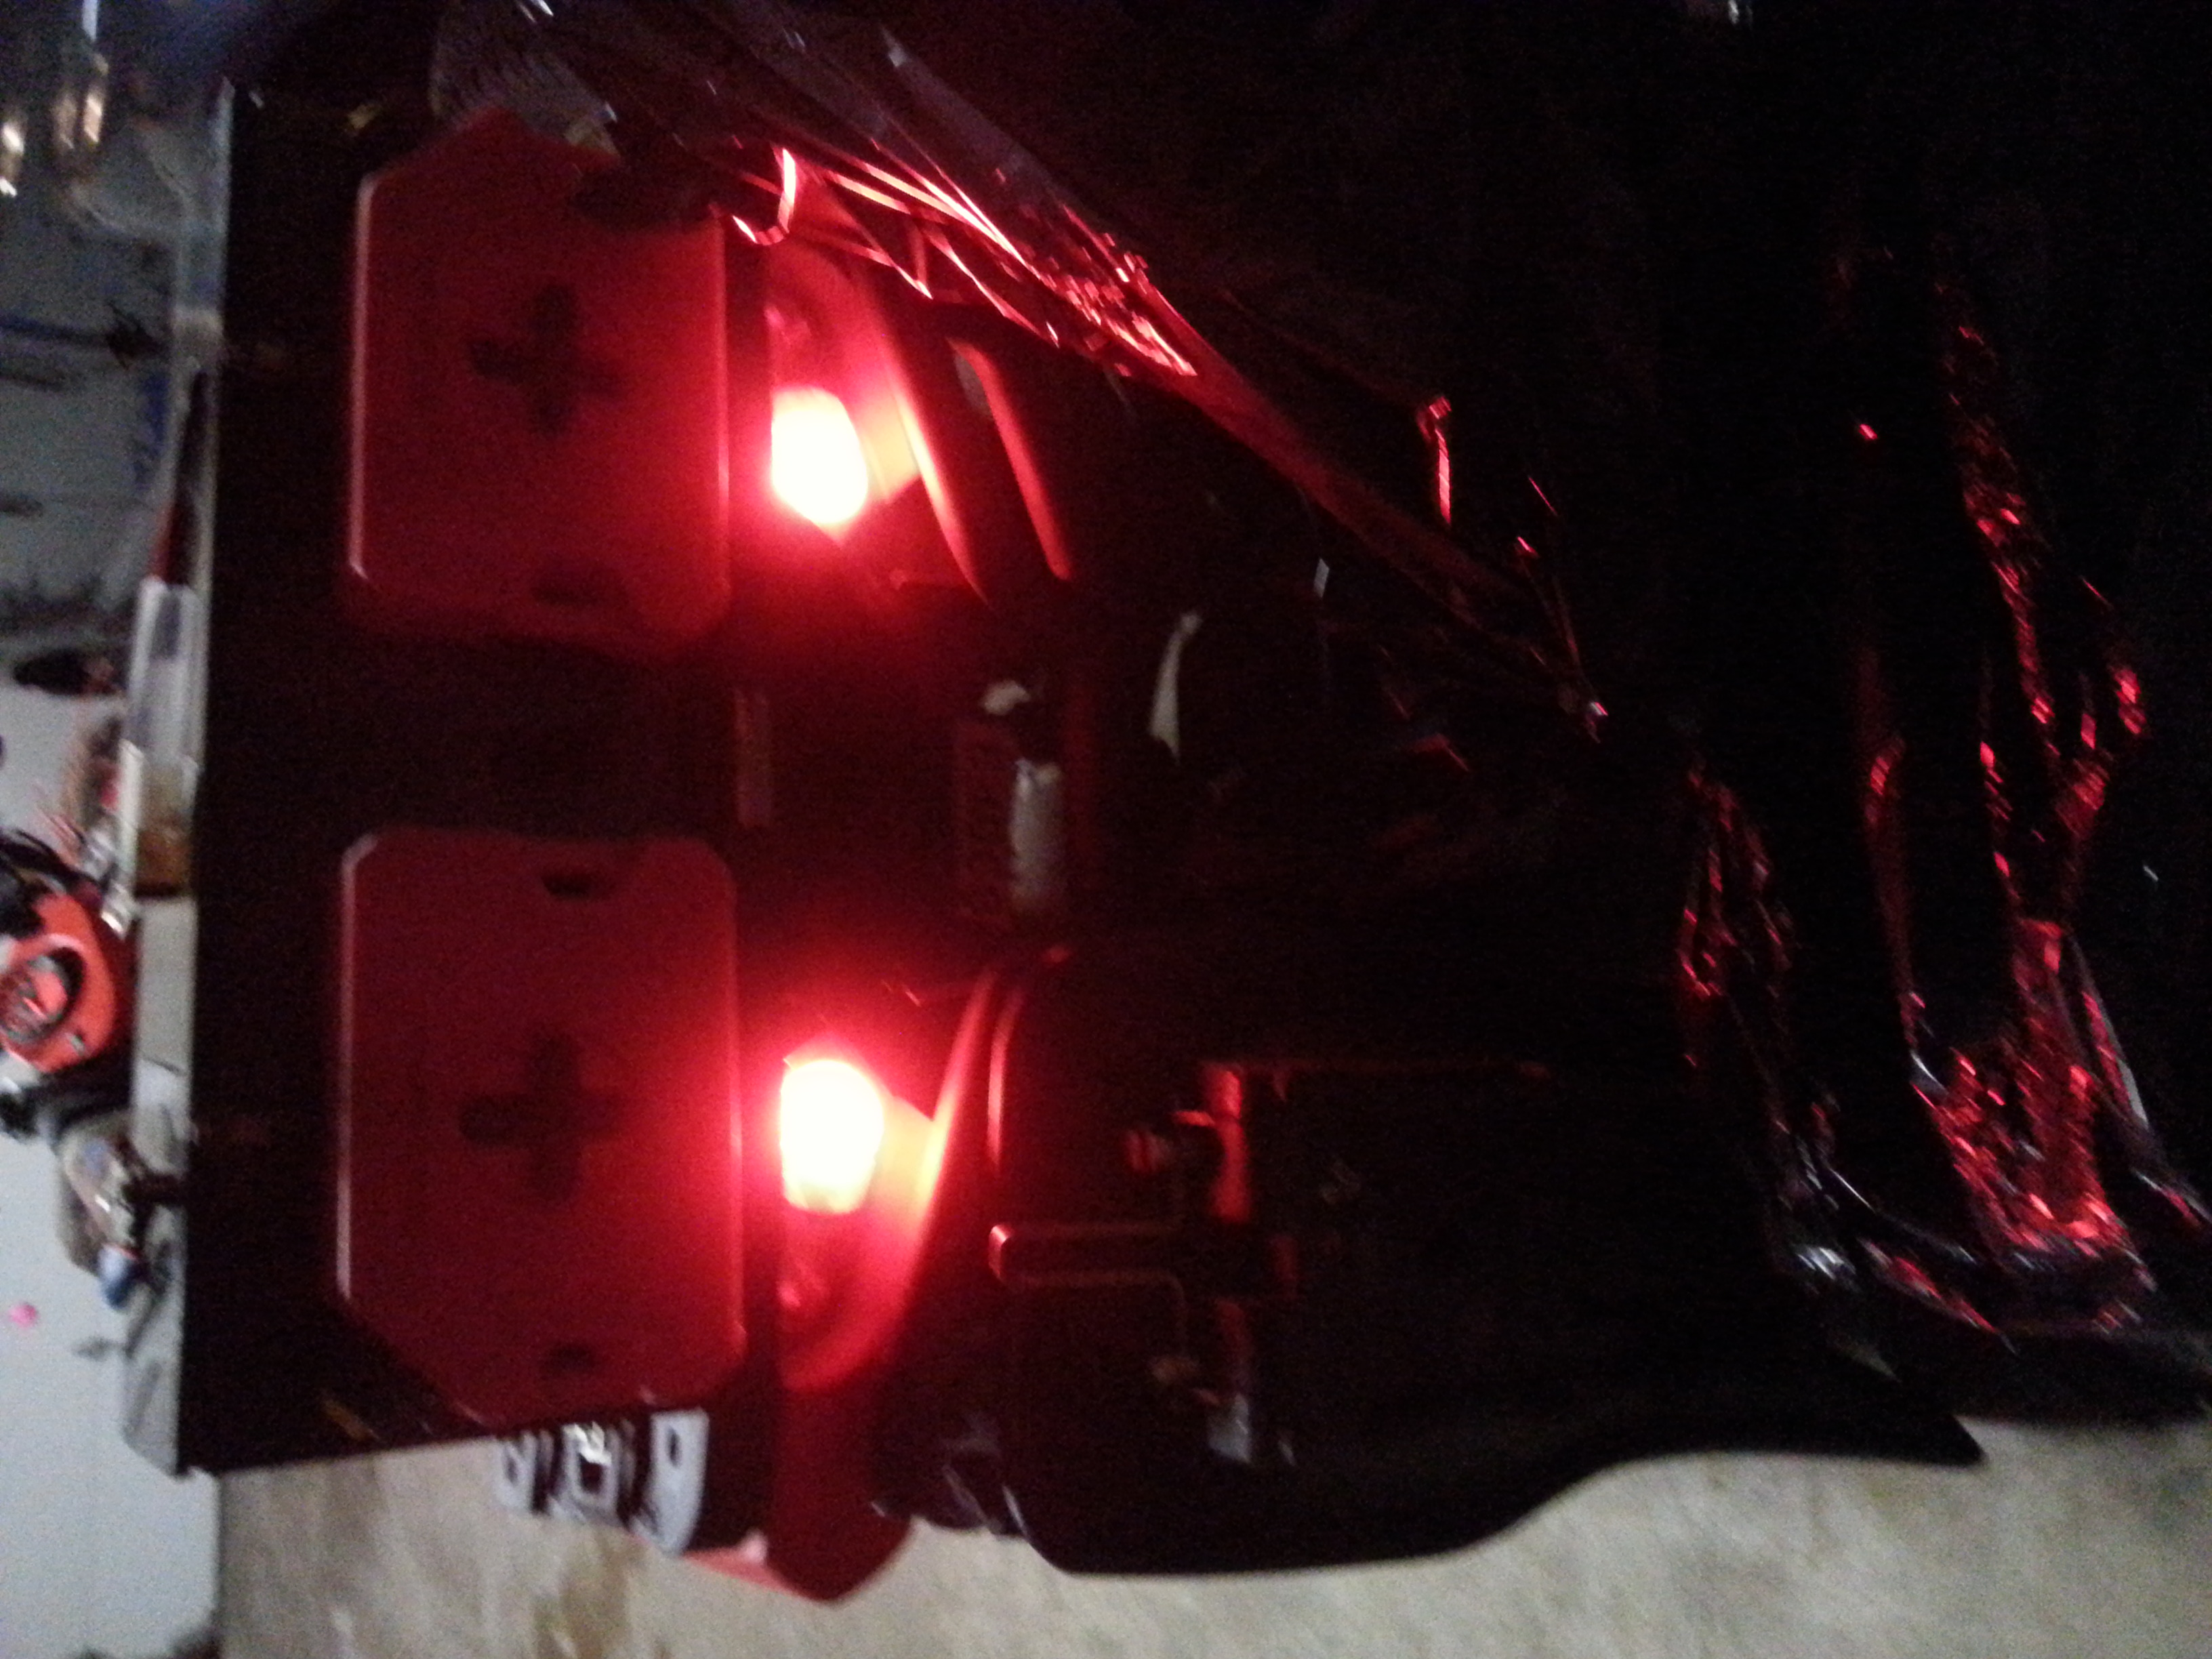 All Lights Work Except ke Lights - Best ke 2018 on chevy 7 pin wiring diagram, chevy truck aftermarket tail lights, chevy 1500 wiring diagram, 1994 chevy 2500 wiring diagram, chevy light switch diagram, chevy a/c compressor wiring diagram, chevy windshield wiper motor wiring diagram, 1967 chevy wiring diagram, 1949 chevy pickup wiring diagram, chevy fuel gauge wiring diagram, chevy c10 wiring-diagram, chevy fuel pump relay wiring diagram, chevy throttle body wiring diagram, turn signal relay wiring diagram, 1989 chevy k1500 wiring diagram, chevy suburban radio wiring diagram, chevy neutral safety switch wiring diagram, chevy truck fuse diagram, 1990 chevy k1500 wiring diagram, 1962 chevy wiper motor wiring diagram,